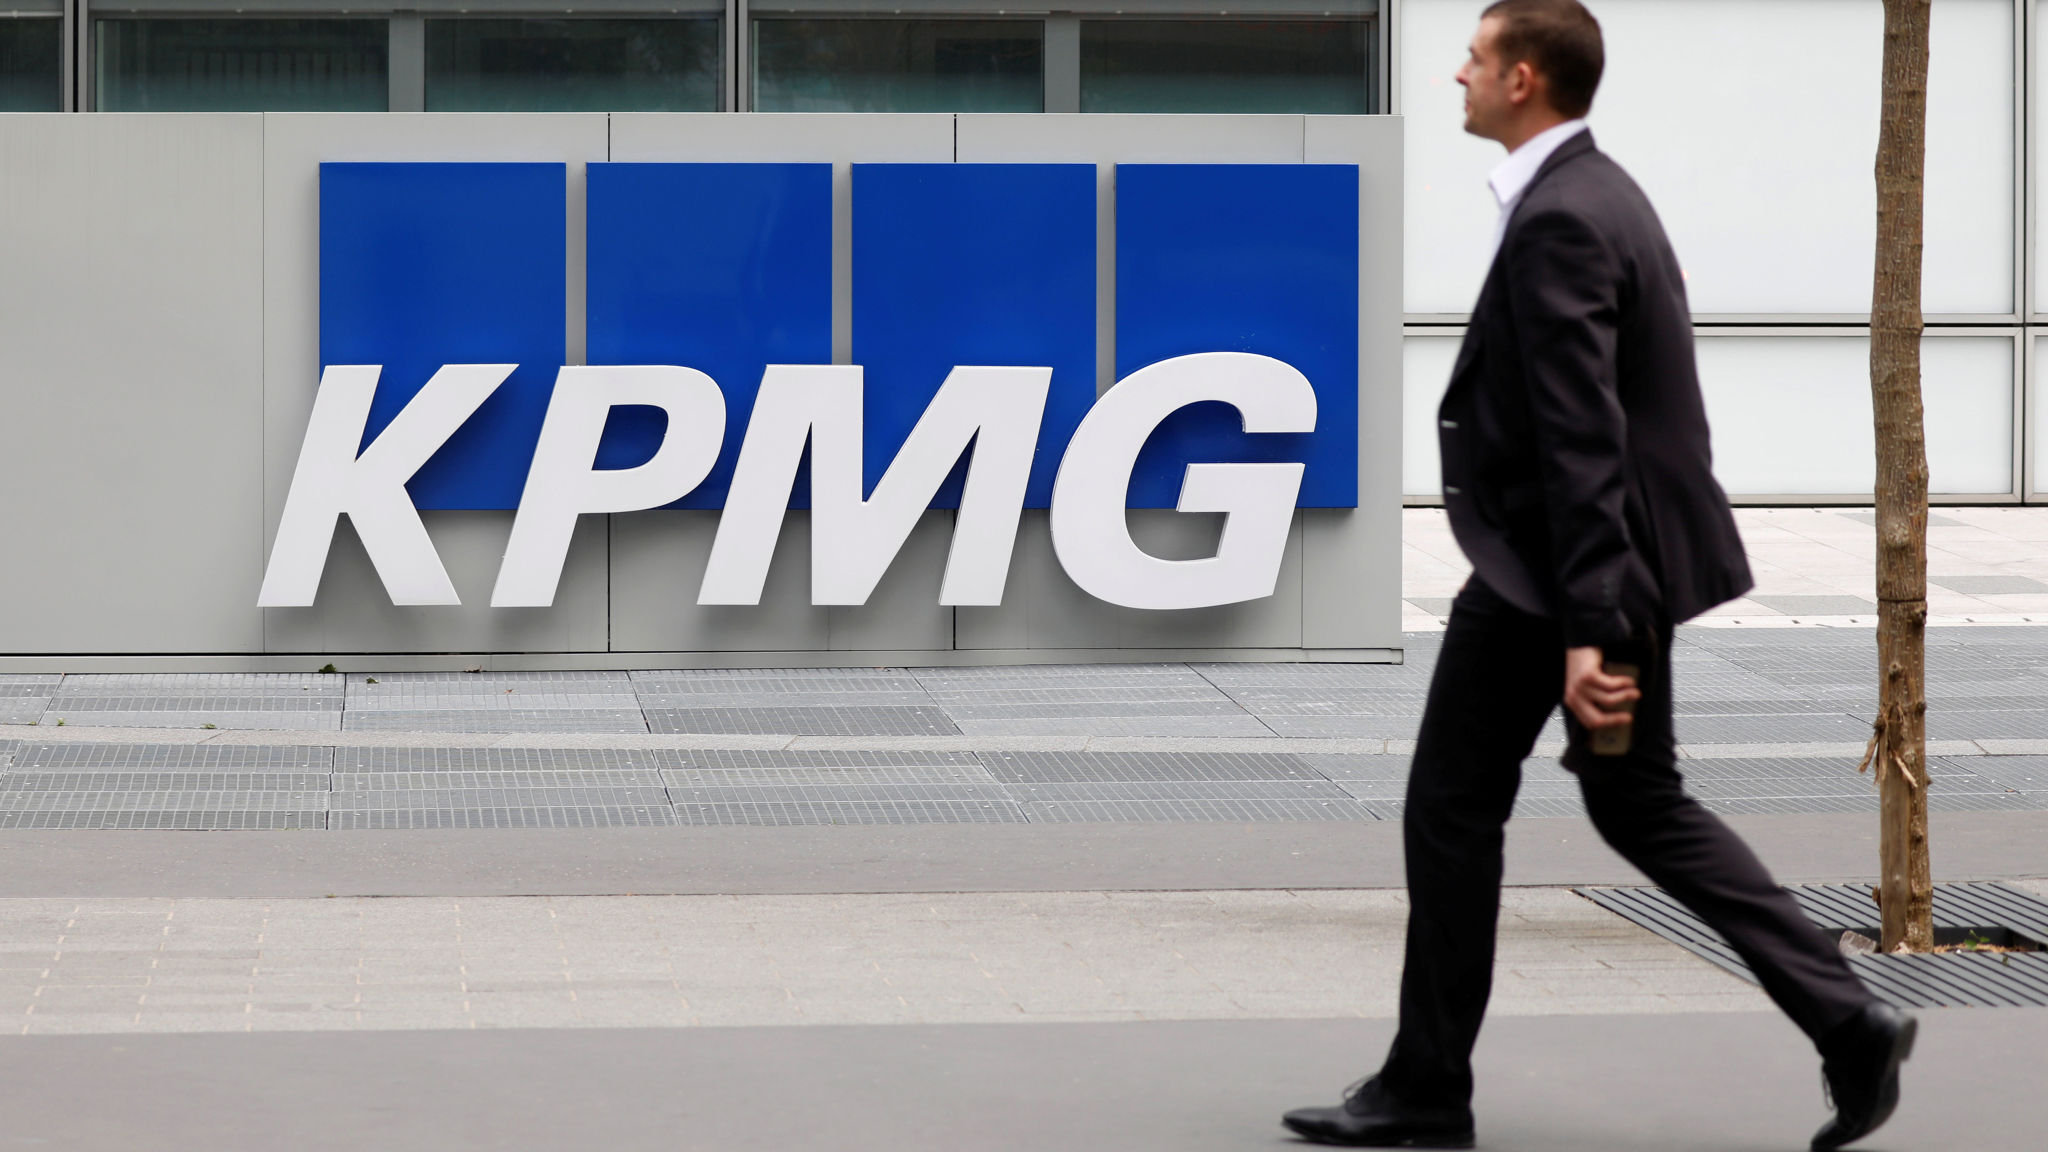 A KPMG court case over Carillion is needed to serve public